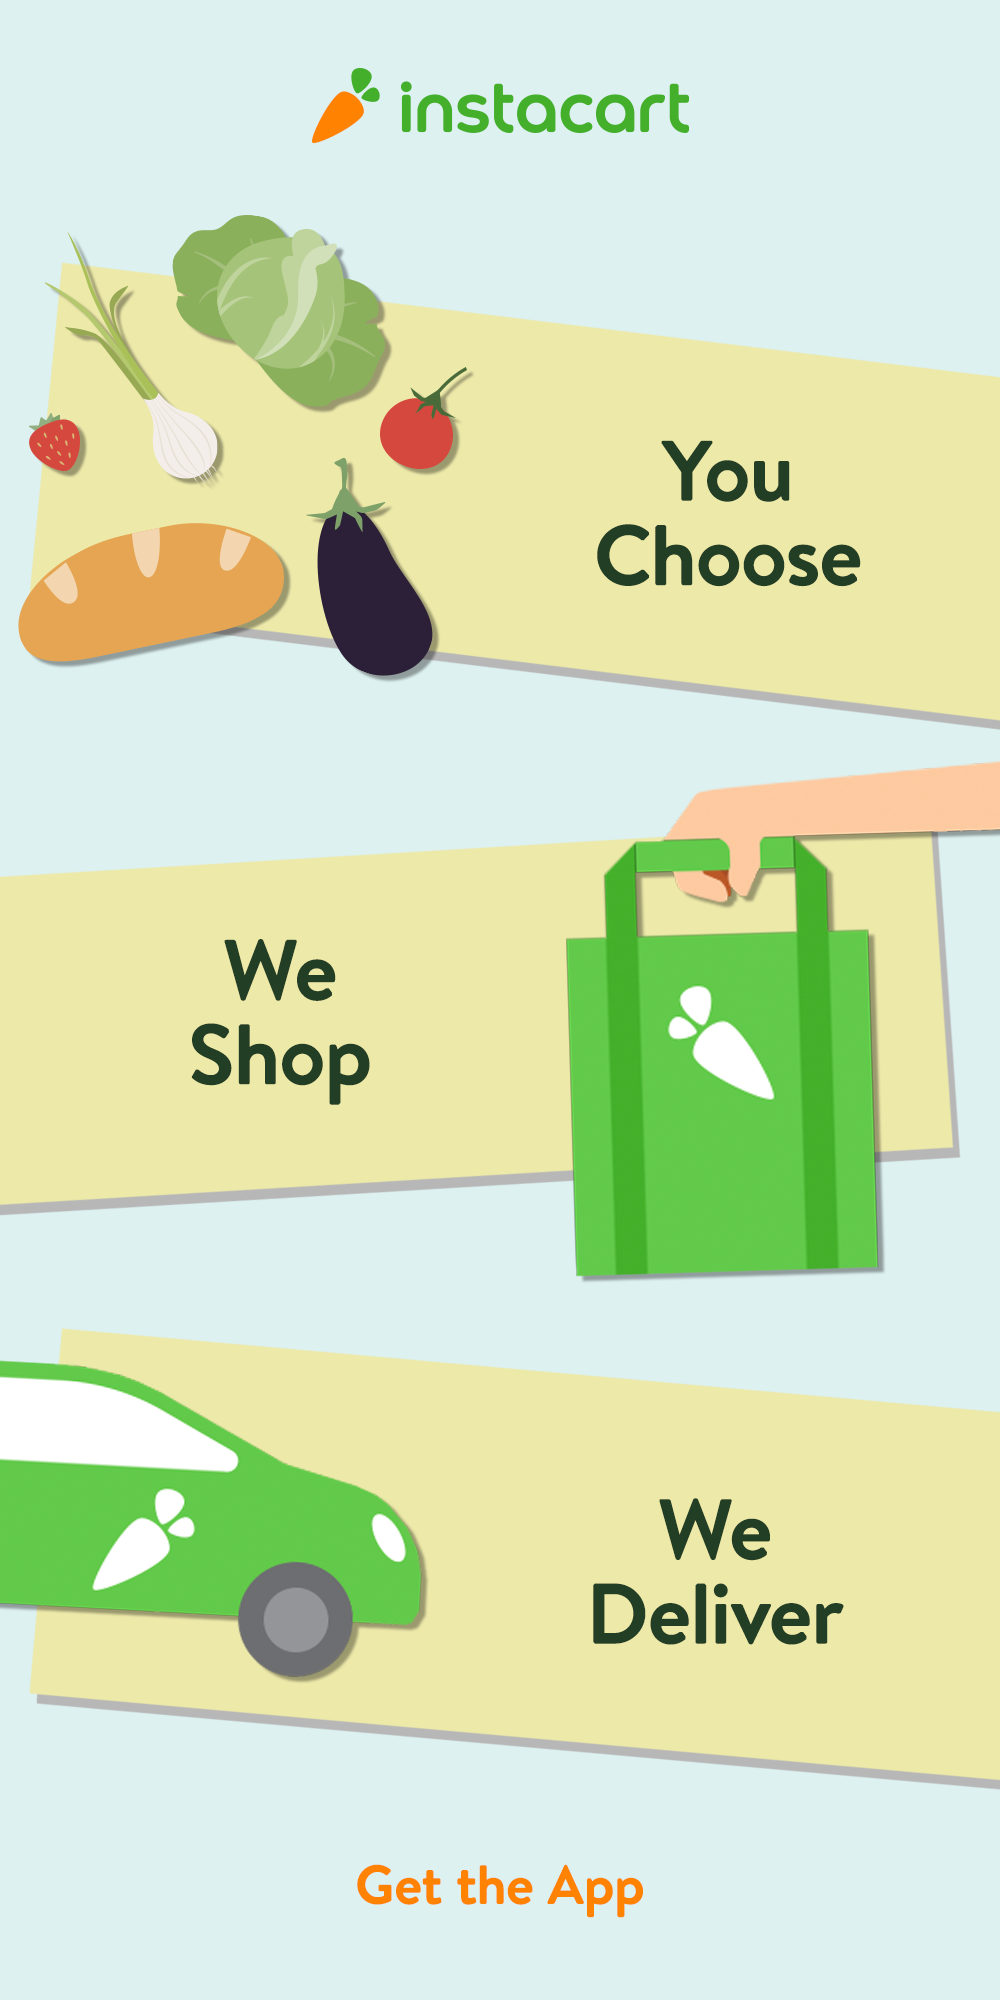 Skip the supermarket and get the app instead. Instacart